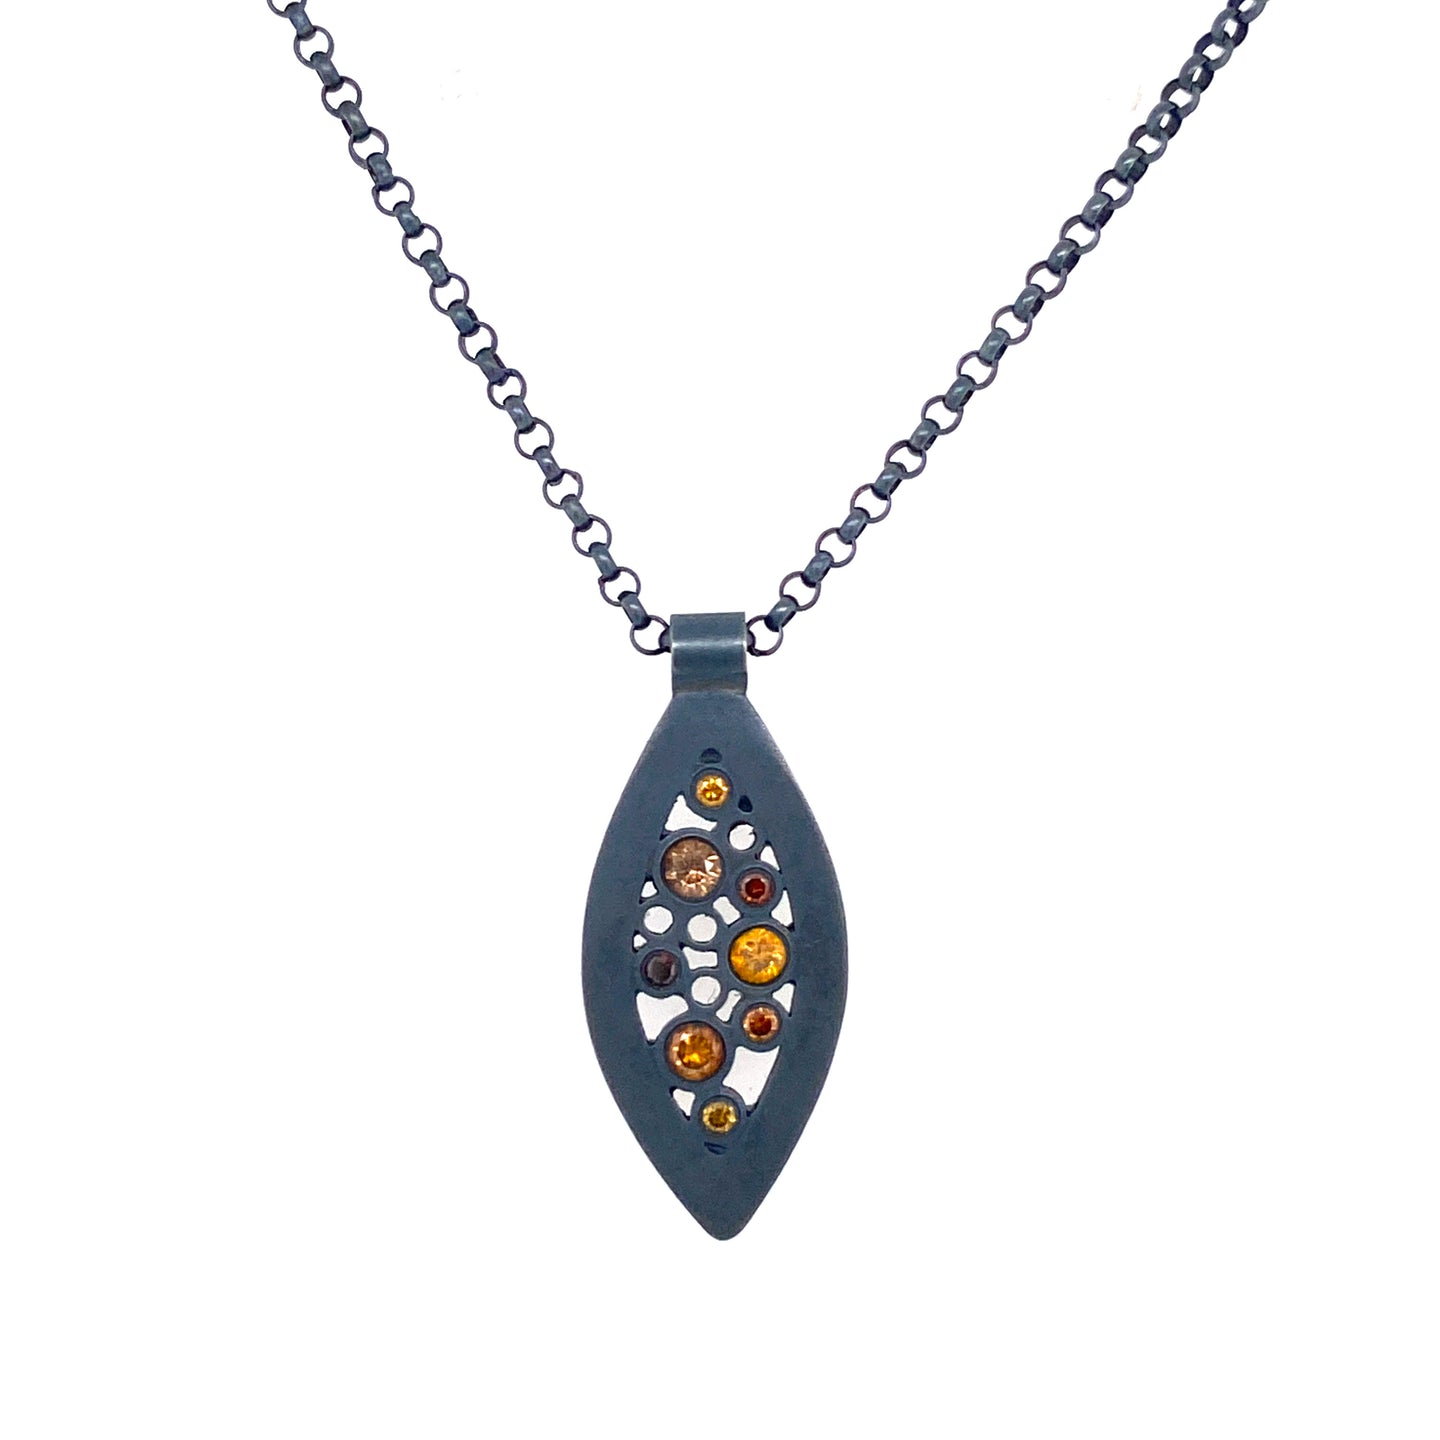 Belle Brooke Oscuro Petite Leaf Necklace